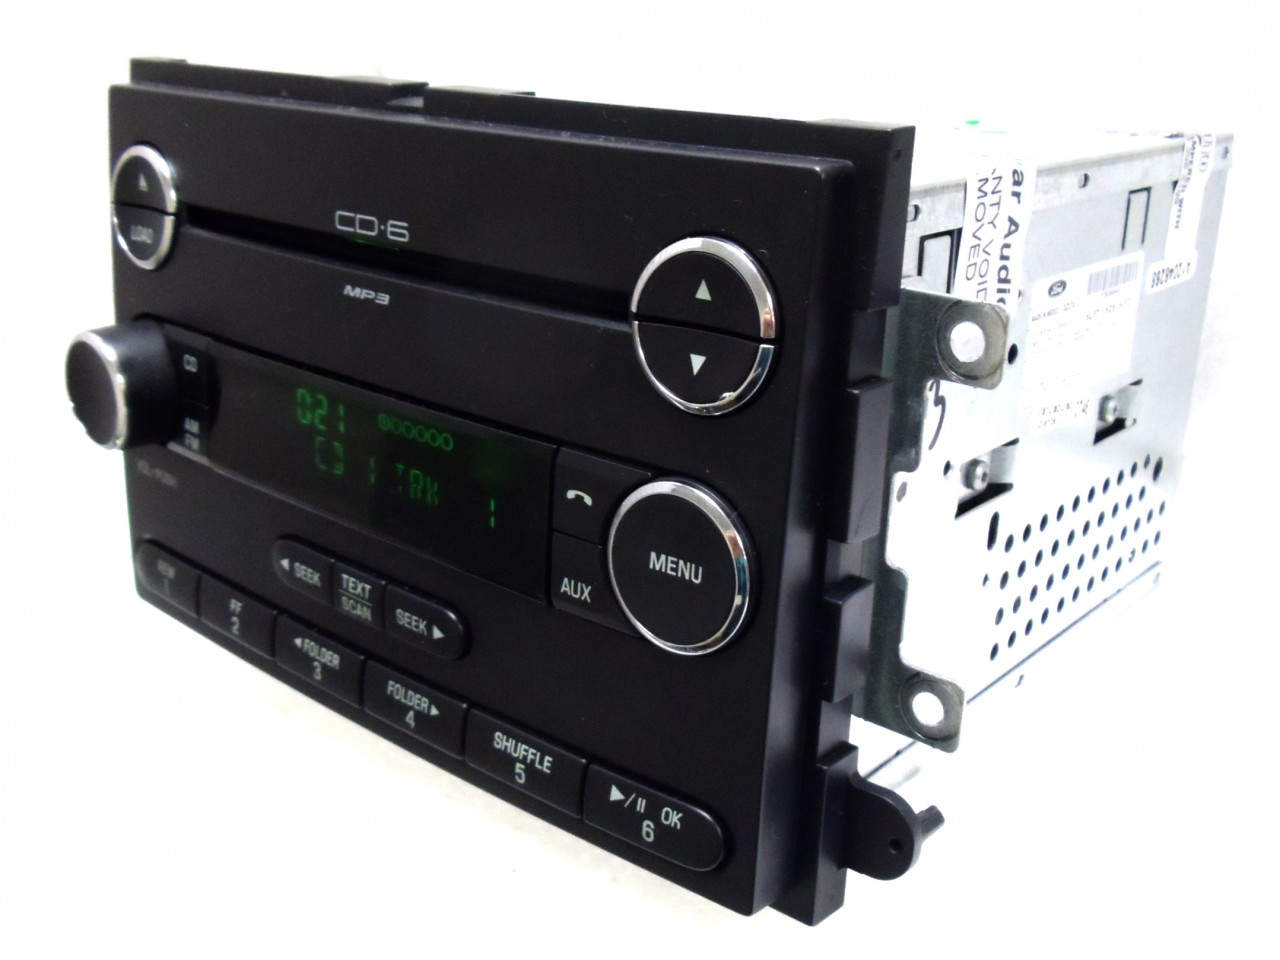 06 07 08 09 Ford FUSION F-150 Mercury MILAN Radio AUX MP3 MP 3 6 Disc CD Changer